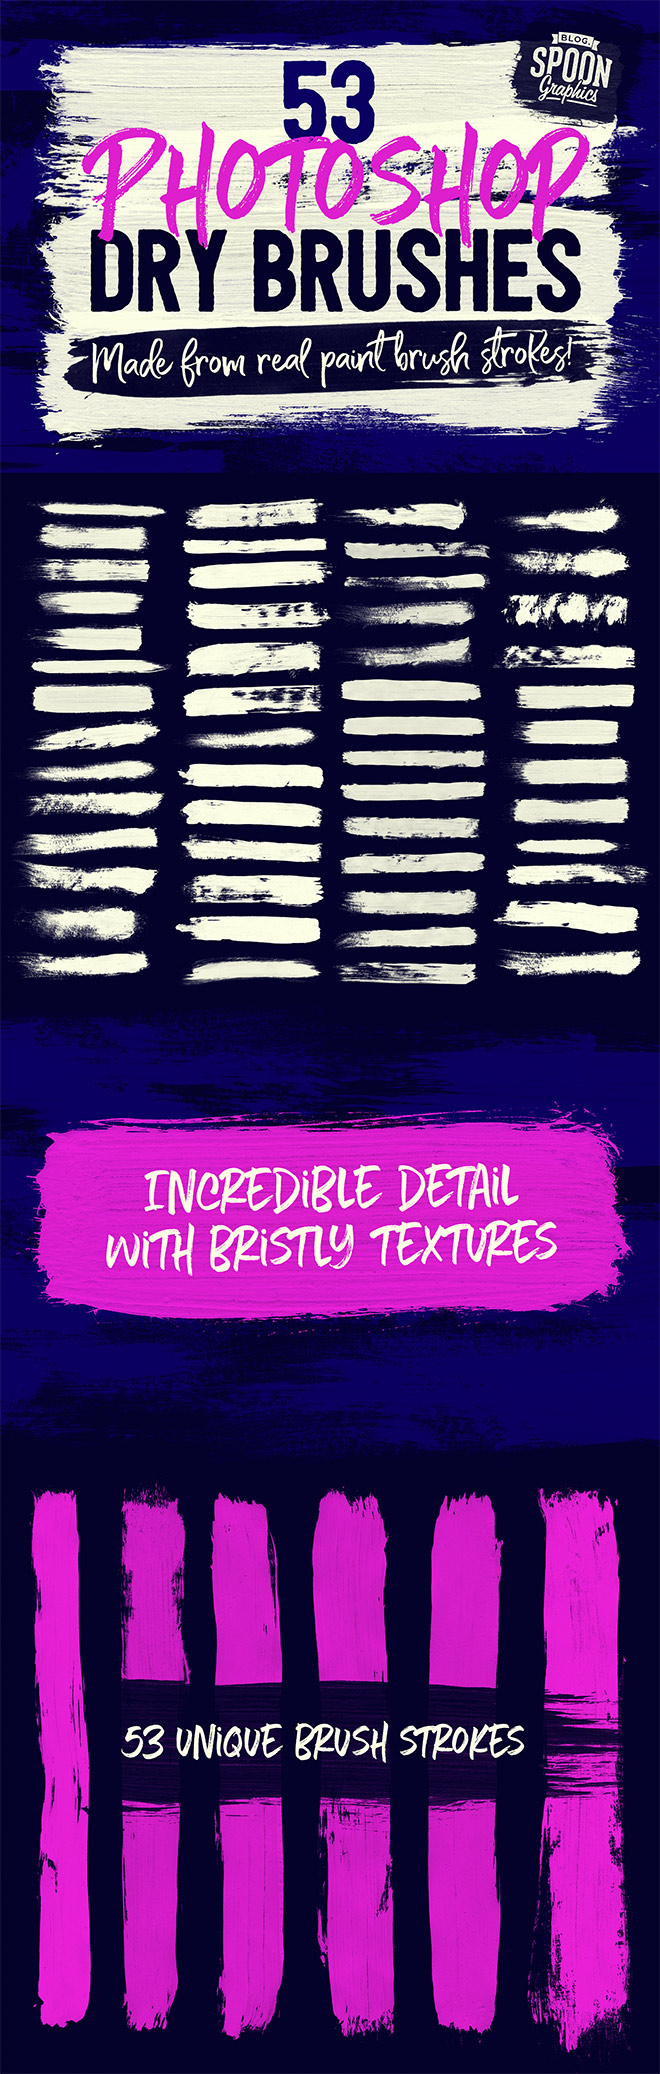 53 Free Photoshop Dry Brushes Made From Real Brush Strokes